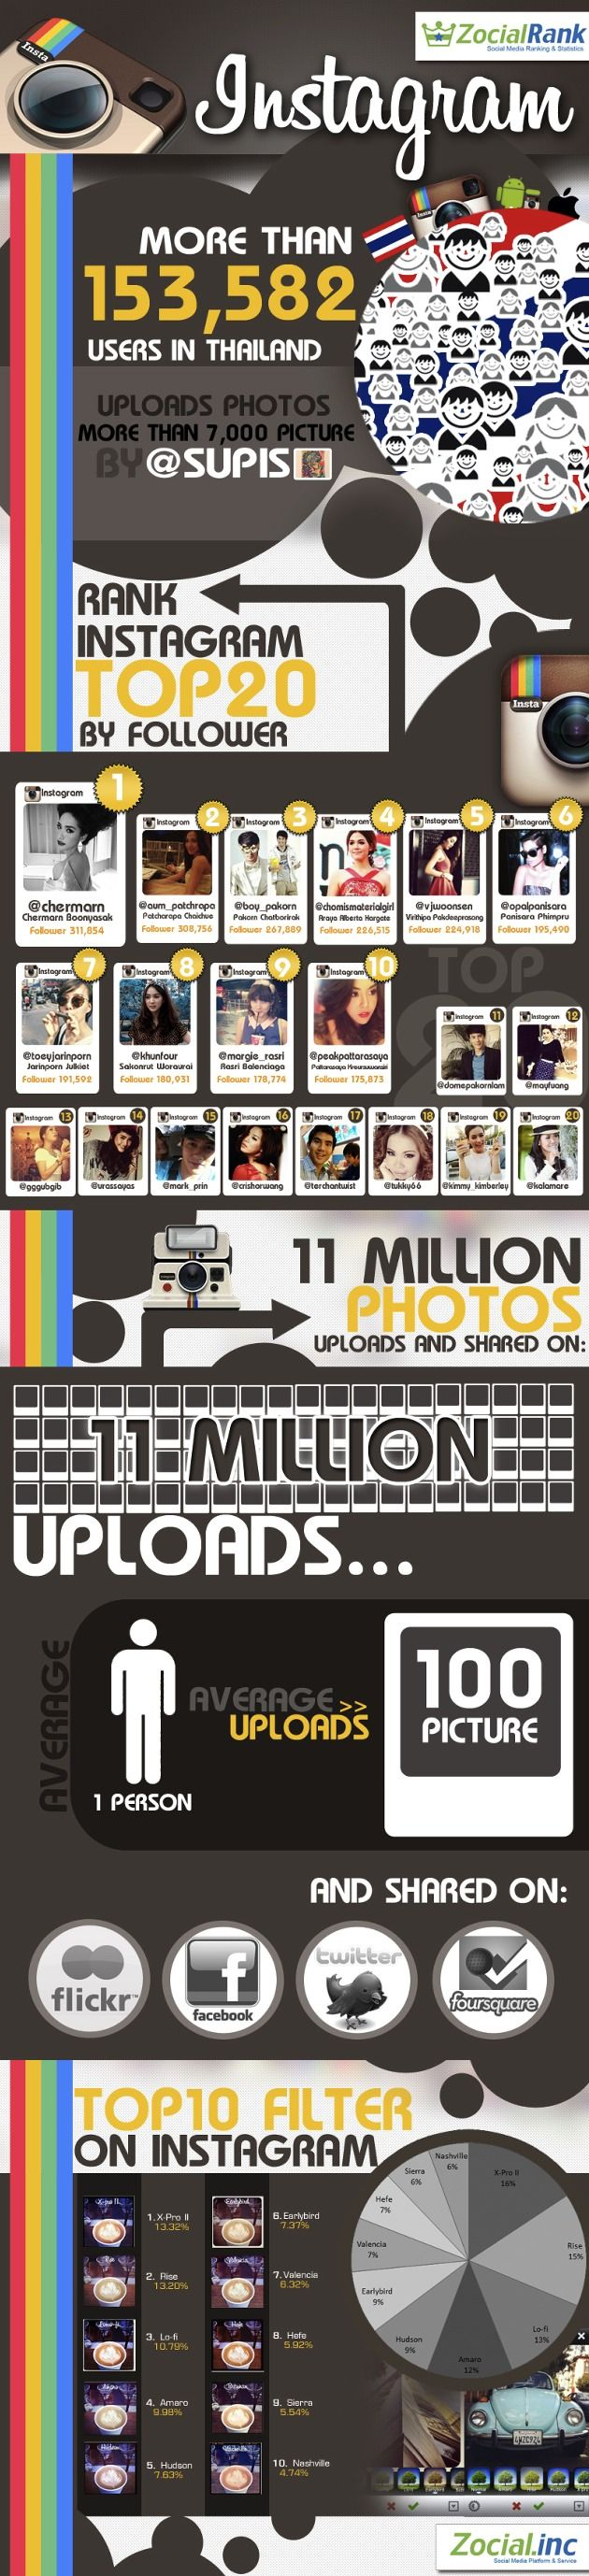 Thai User Numbers on InstagramDigital Marketing, Things Infographic, Infographic Inspiration, Graphics Design, Business Marketing, Thai Instagram, Digital Infographic, Info Graphics, Celebrities Digital